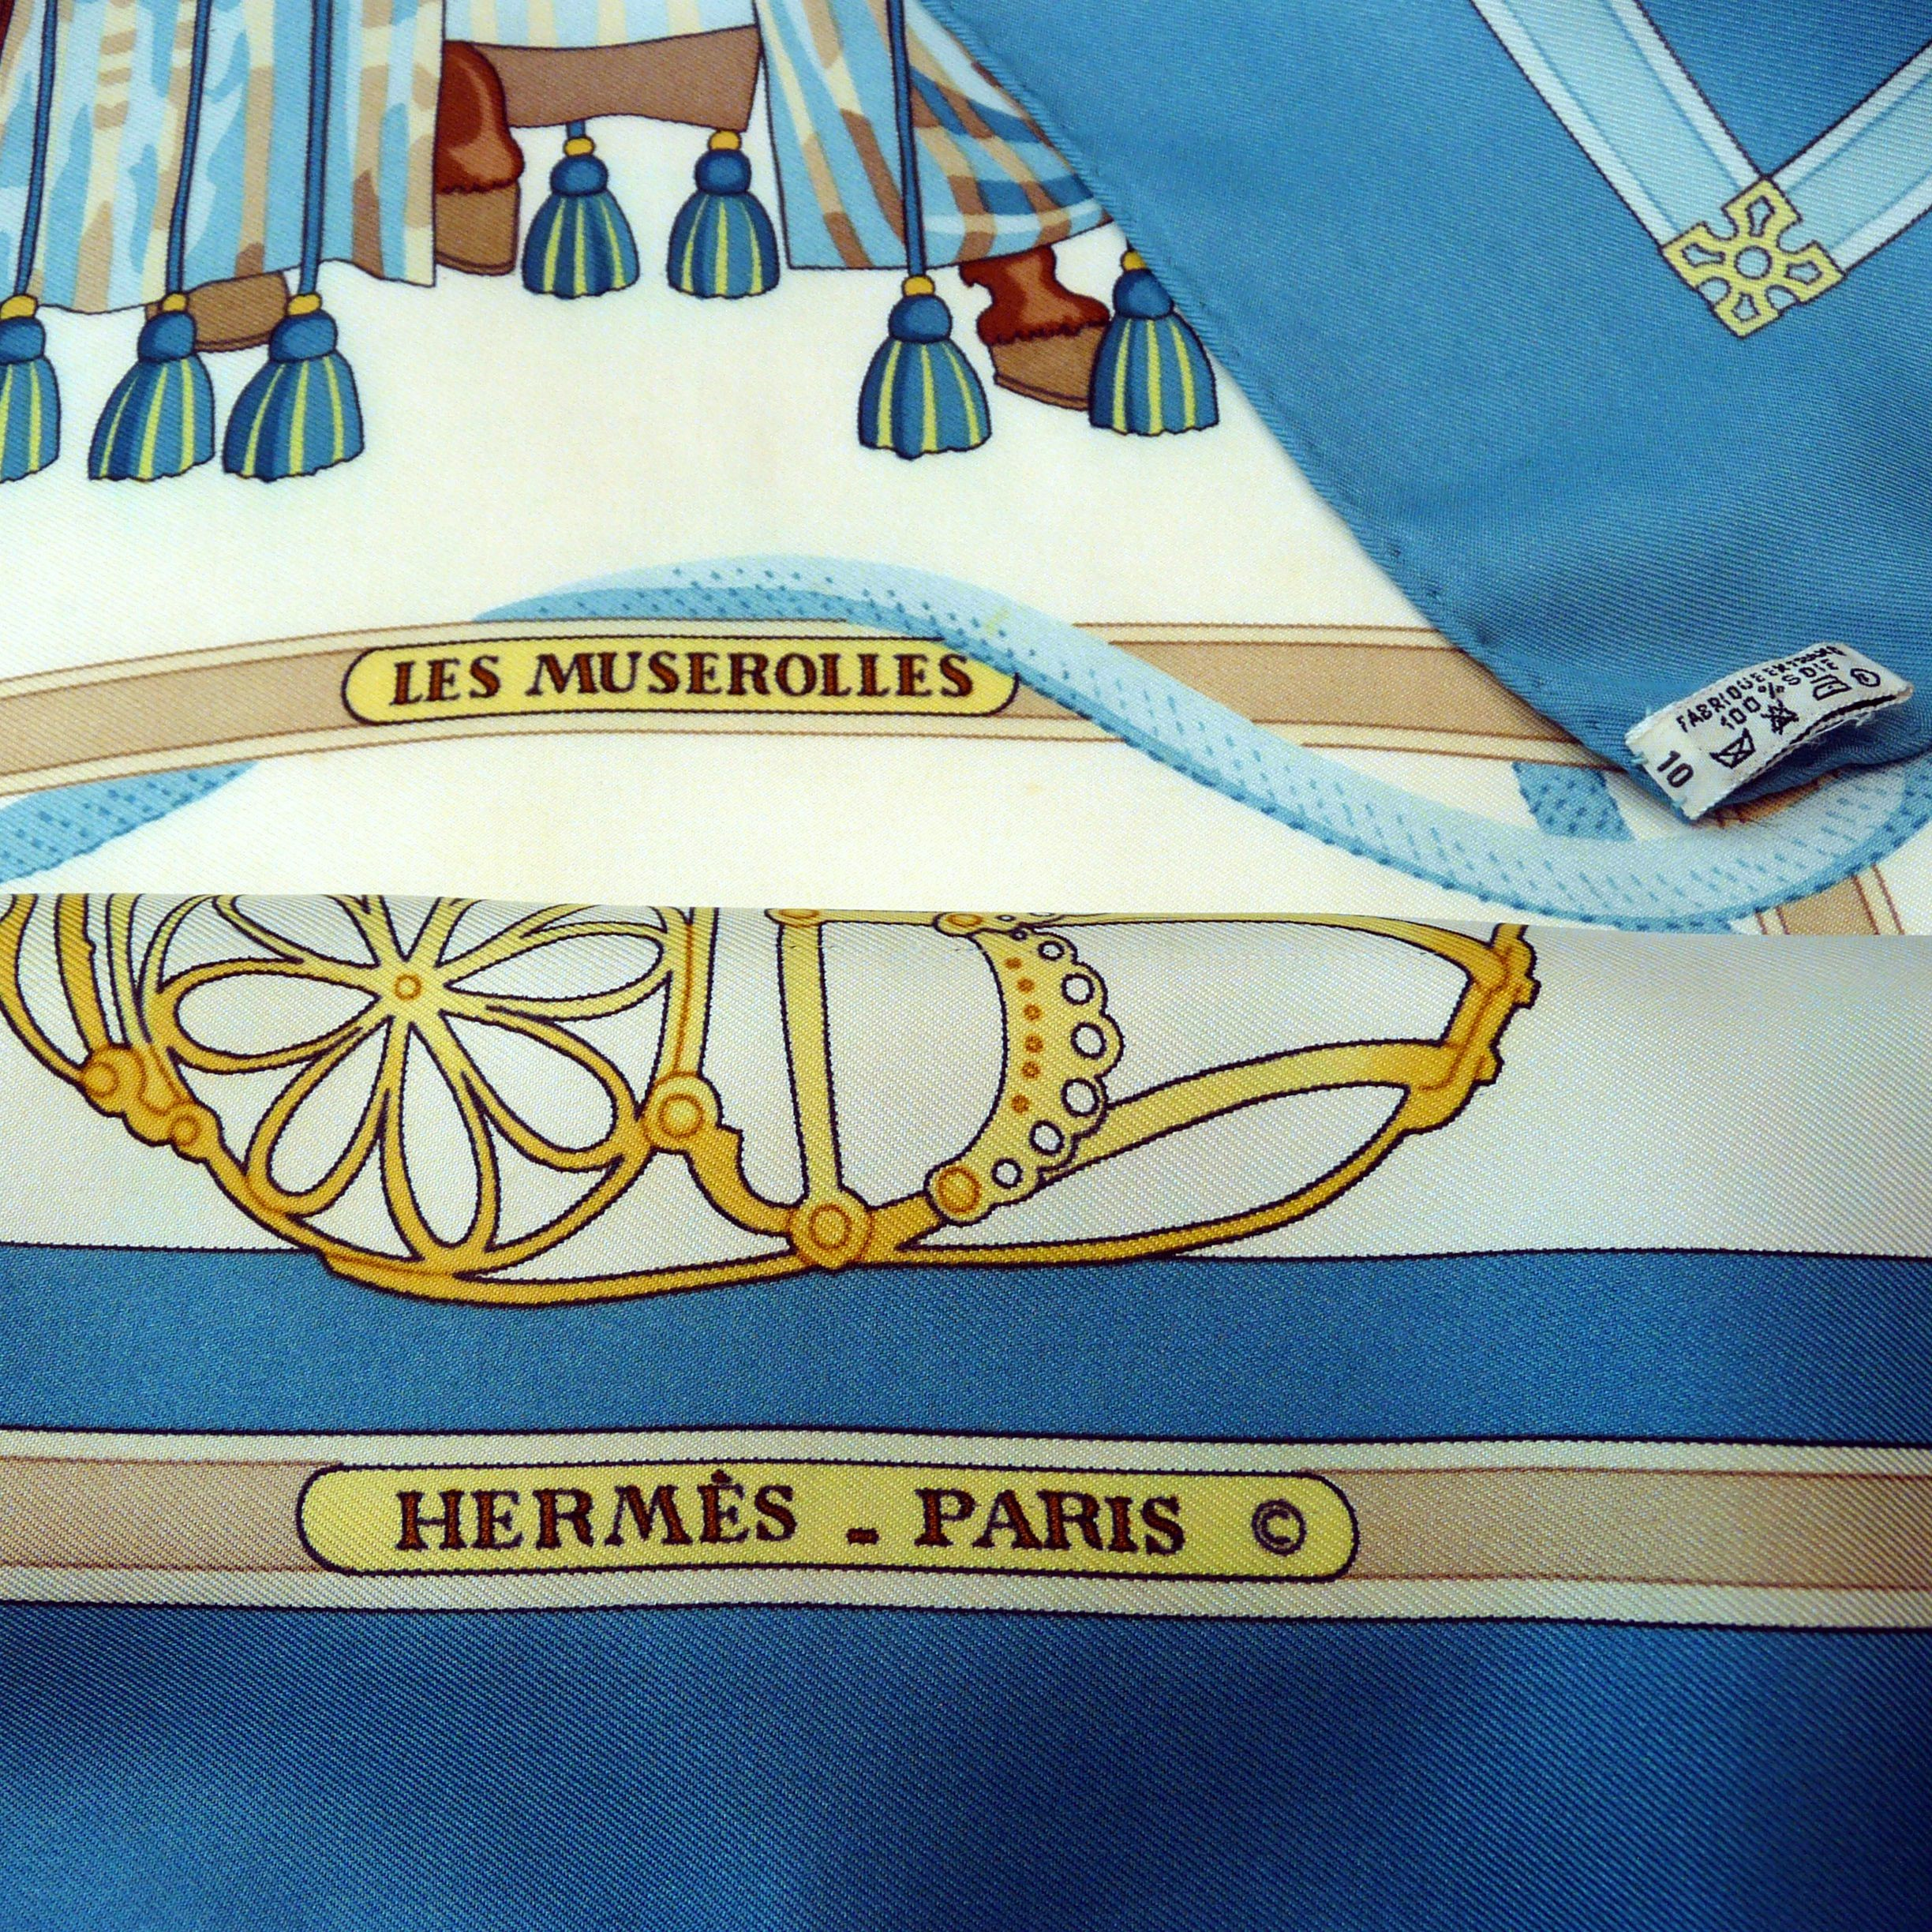 Les Muserolles HERMES Scarf copyright care tag